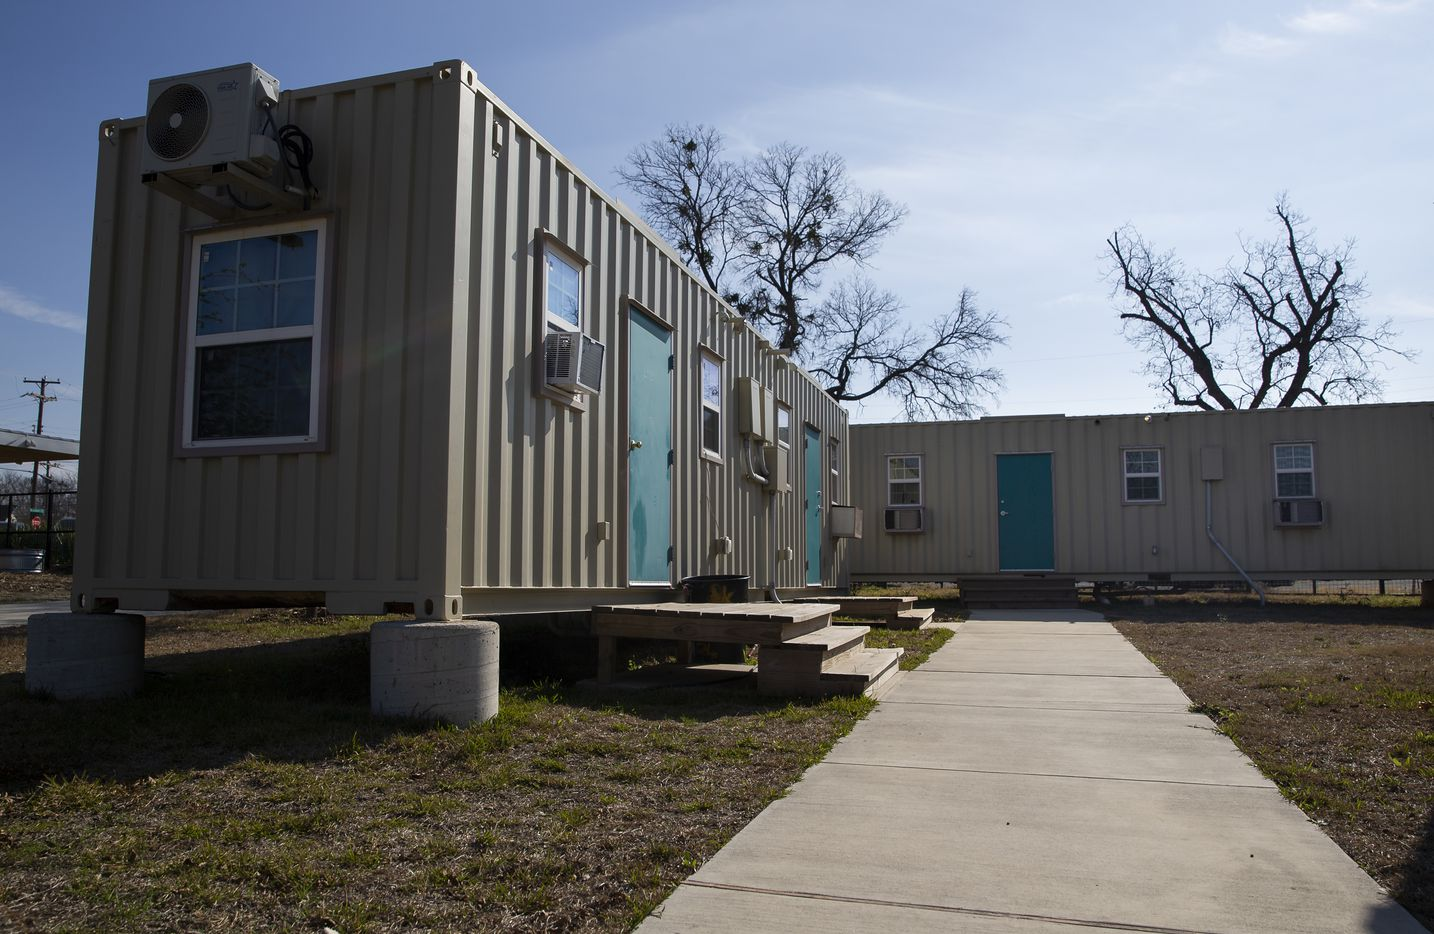 Recycled shipping container homes at the Cottages at Hickory Crossing, which is located at 1621 S Malcolm X Blvd, on Dec. 6, 2019 in Dallas. Hickory Cottages, a project administered by nonprofit CitySquare, is a community of 50 micro-houses designed to provide housing for homeless individuals. (Juan Figueroa/ The Dallas Morning News)